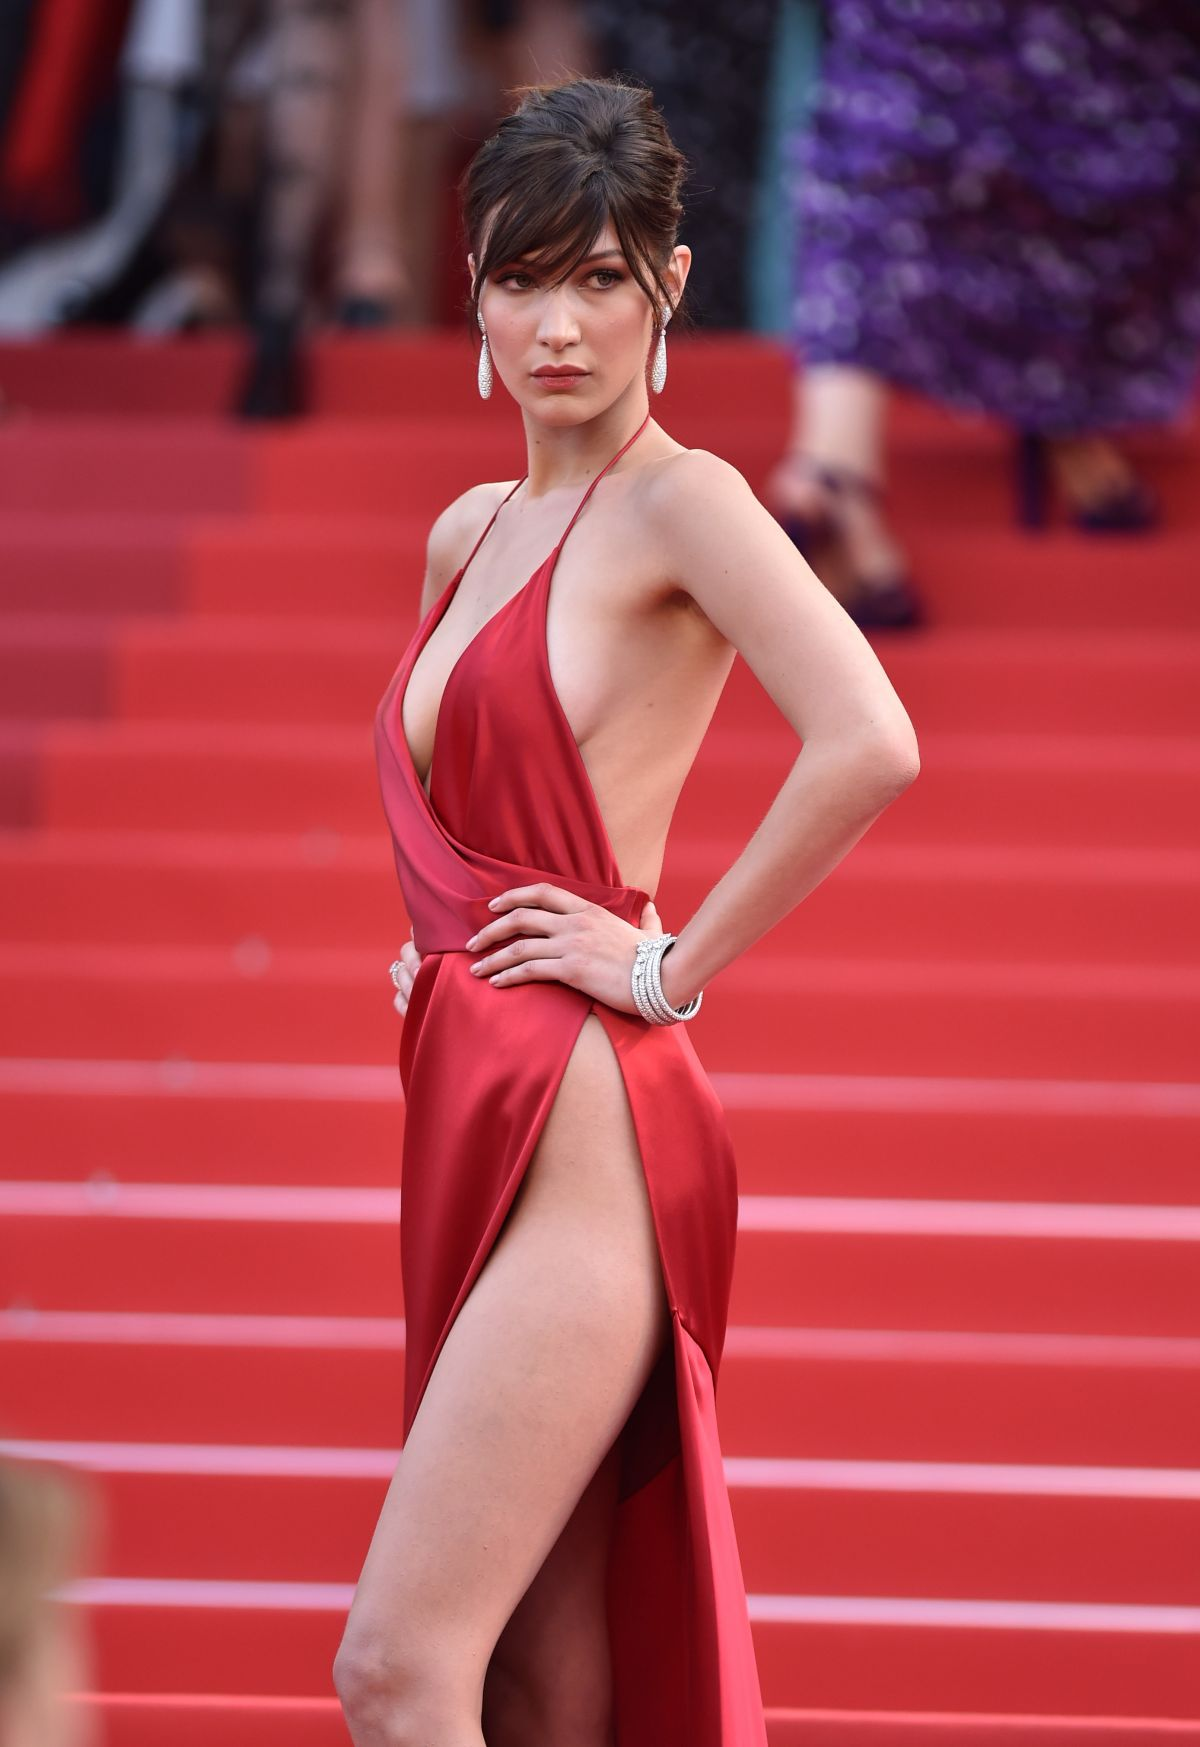 bella-hadid-at-la-fille-inconnue-premiere-at-69th-annual-cannes-fil-festival-05-18-2016_2